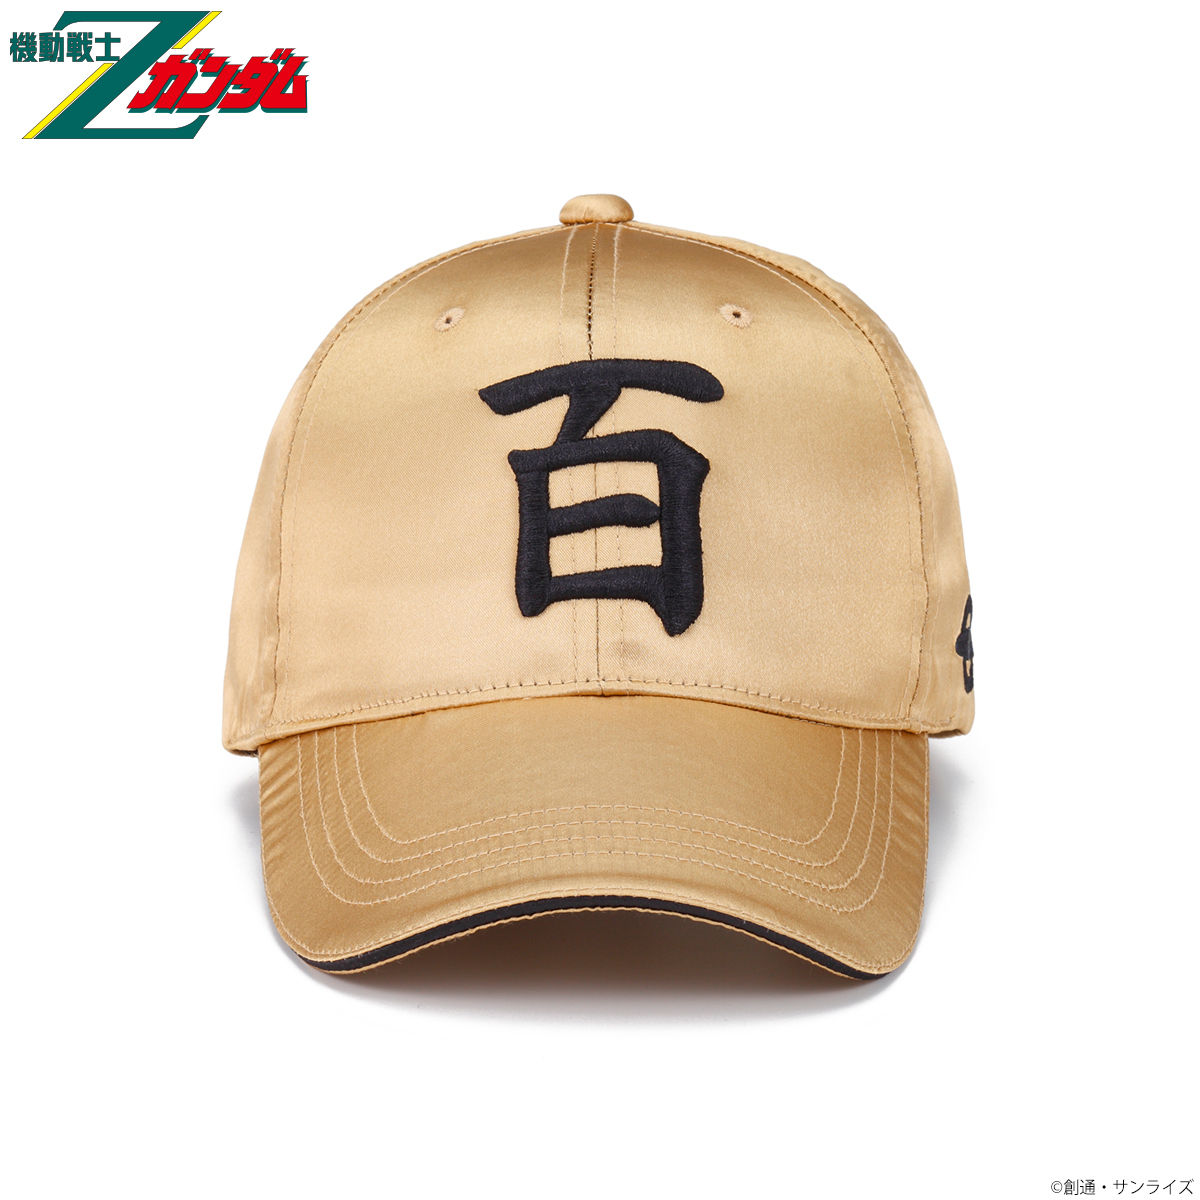 Mobile Suit Zeta Gundam MSN-00100 Cap